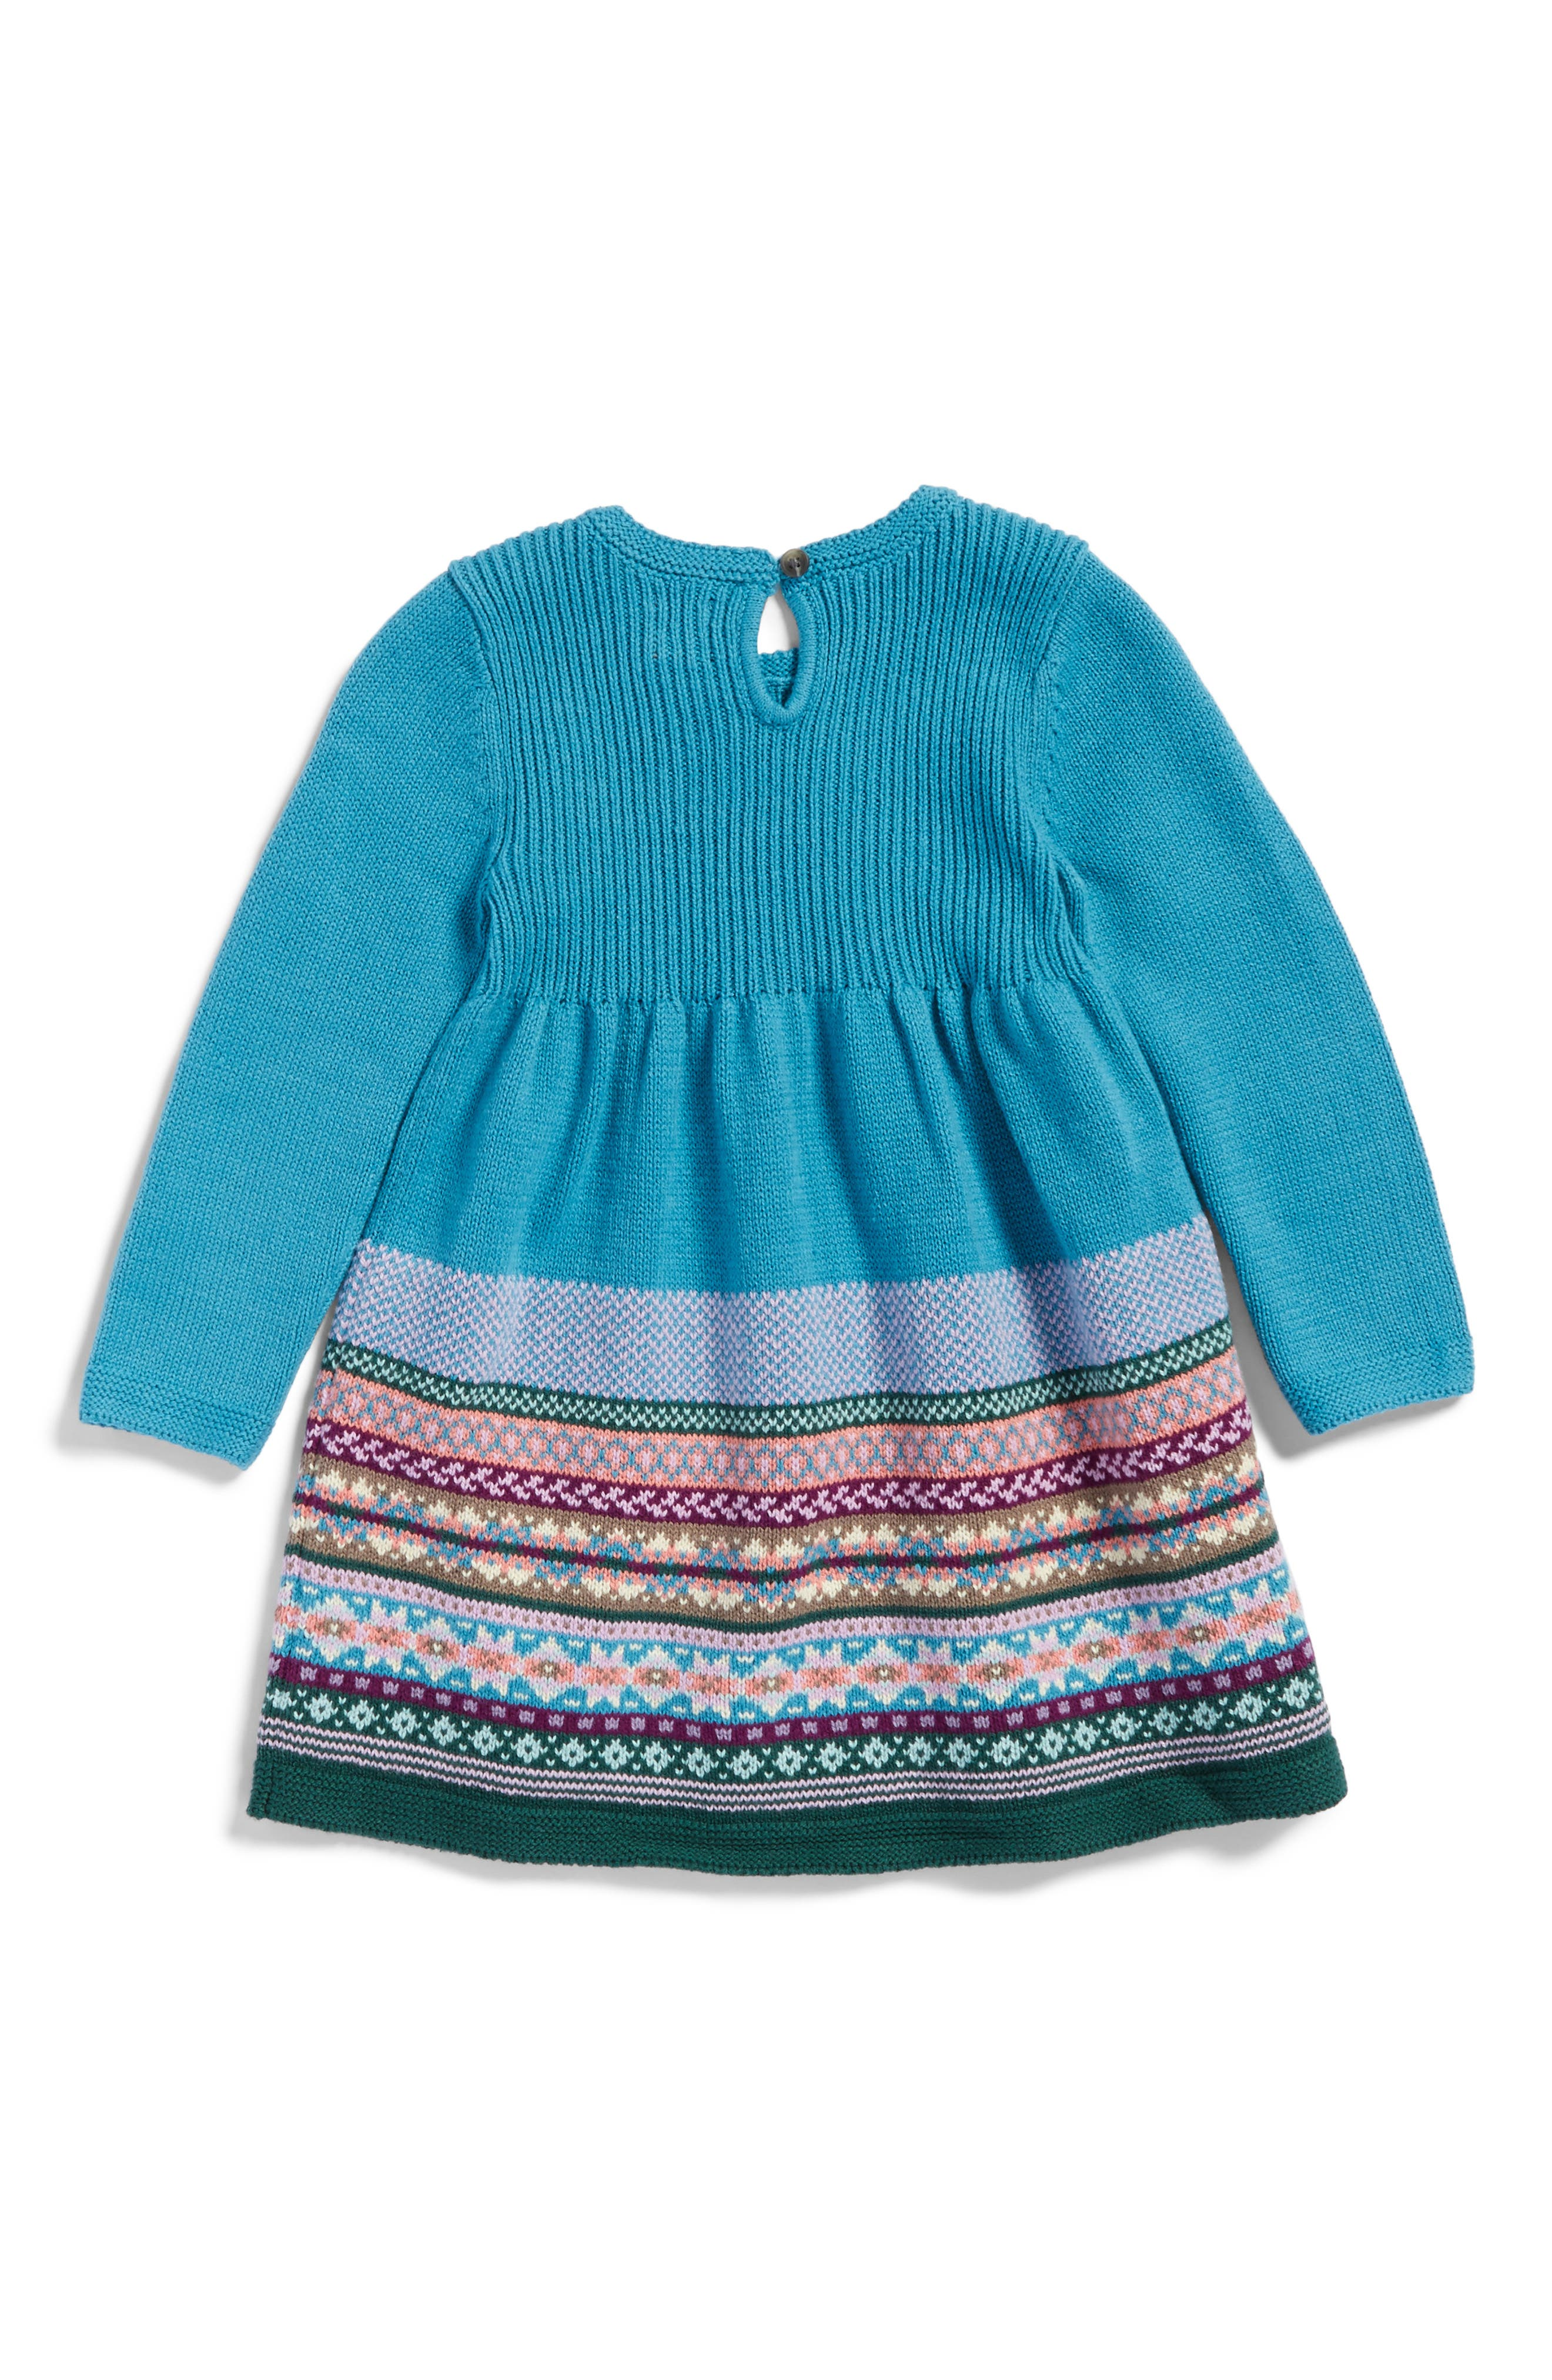 Alternate Image 2  - Tea Collection Suzette Sweater Dress (Baby Girls)